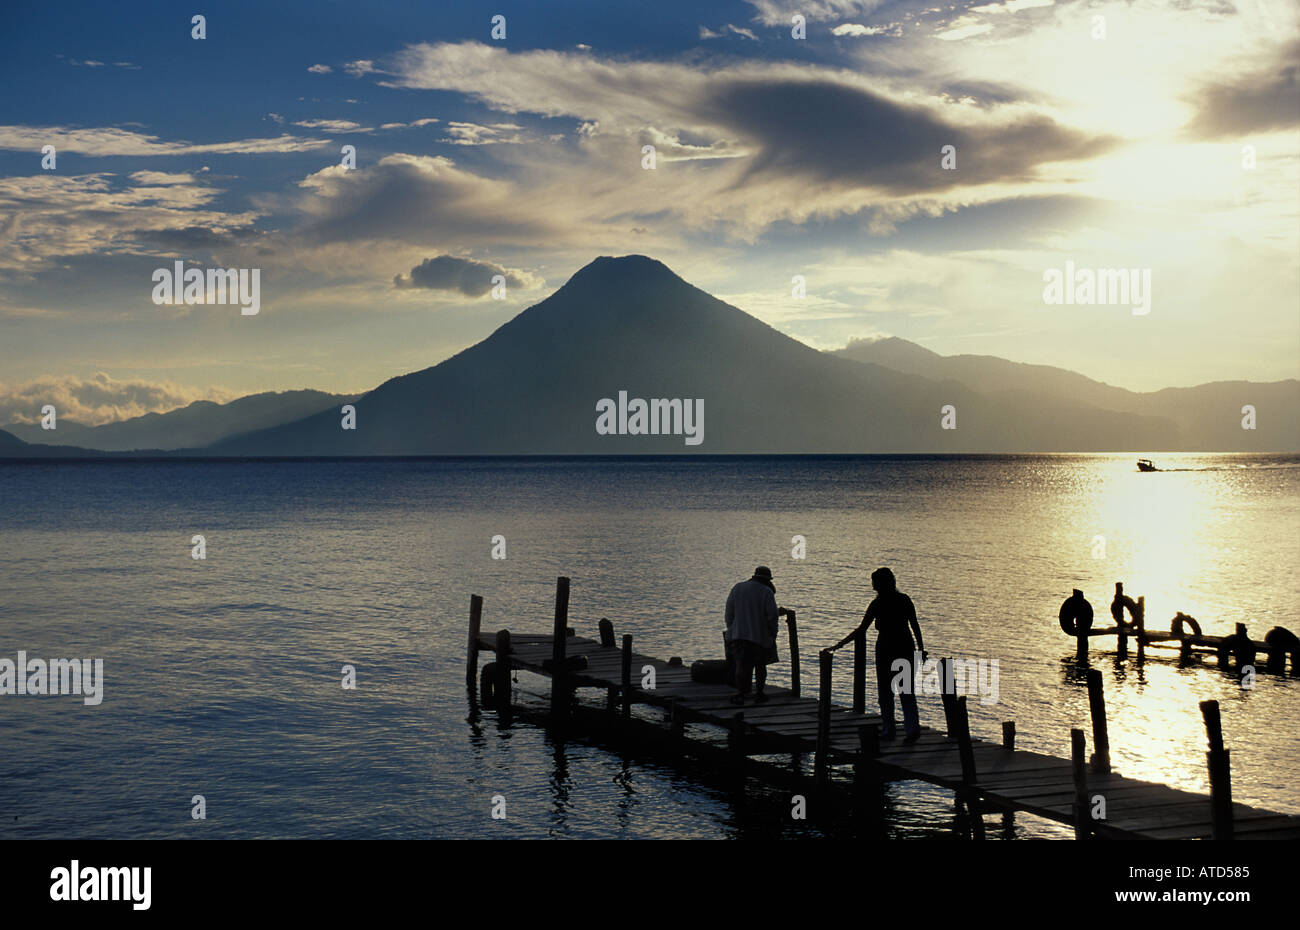 Tourists at the end of a jetty silhouetted at sunset Panajachel Lake Atitlan Guatemala San Pedro volcano beyond - Stock Image